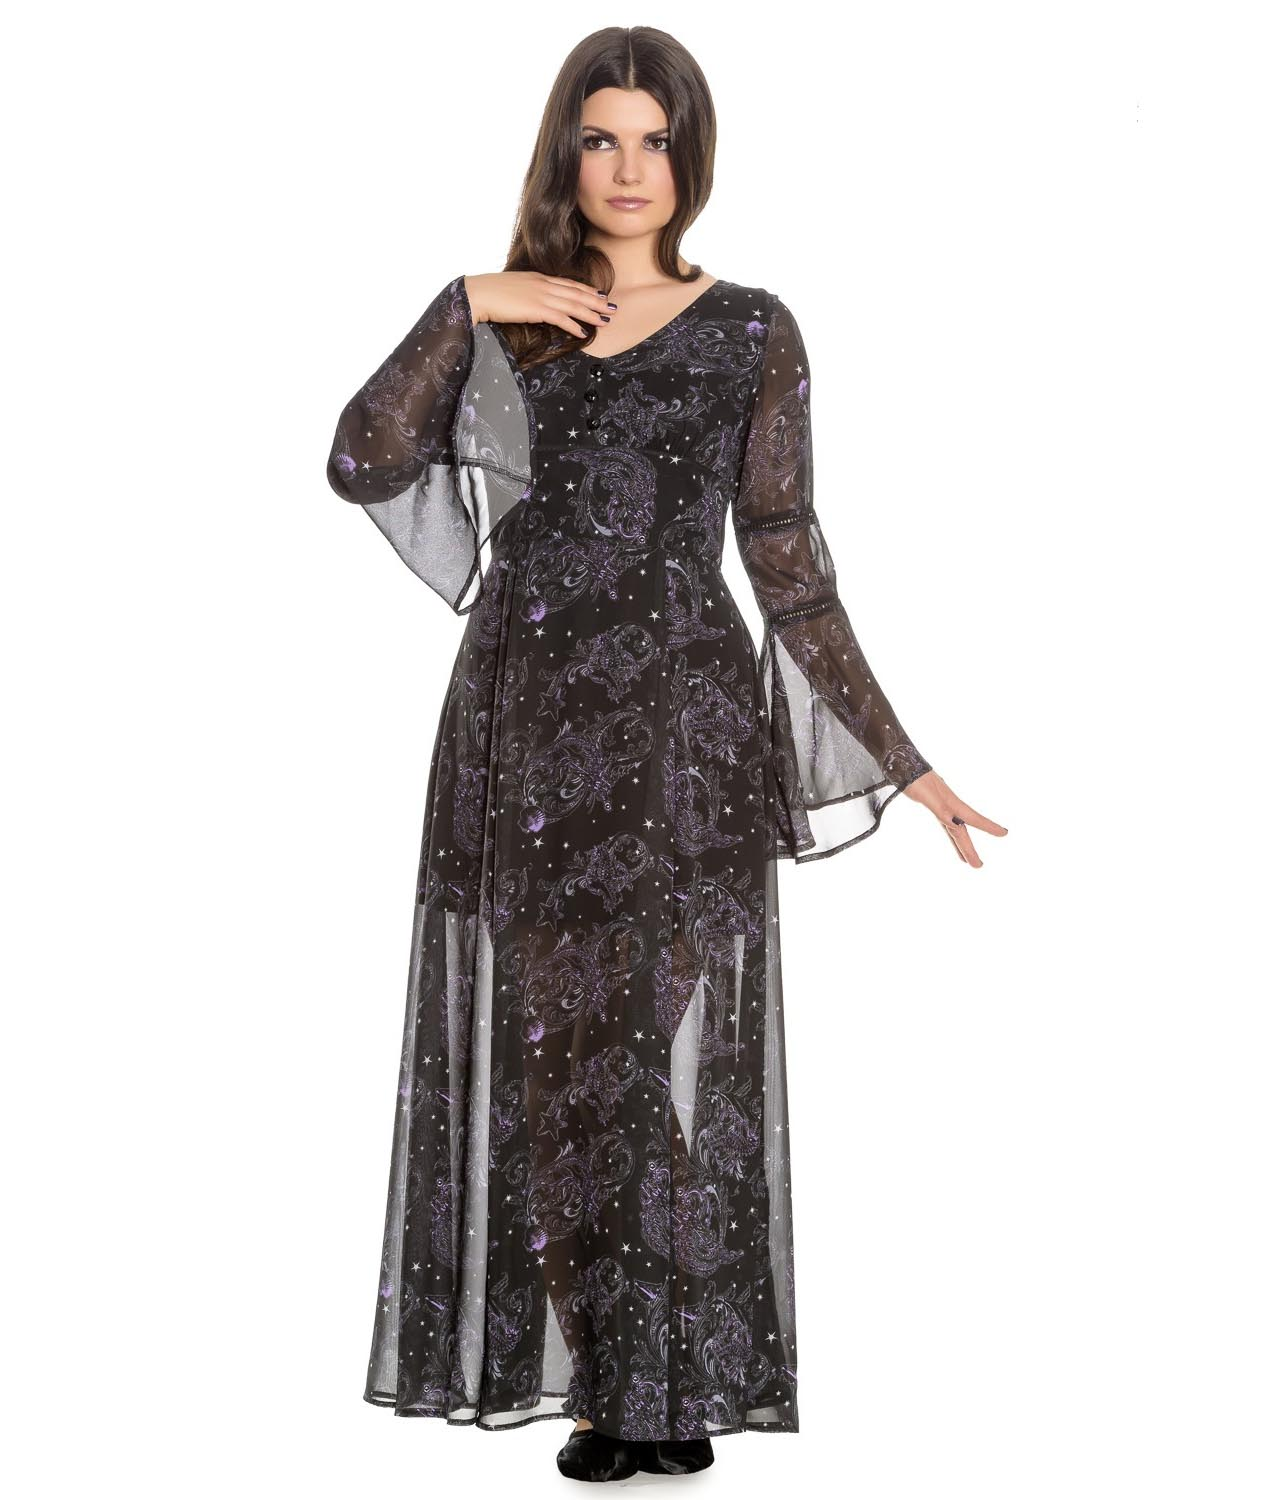 Hell-Bunny-Spin-Doctor-Goth-Maxi-Dress-DARK-SEA-Mermaid-Skeletons-All-Sizes thumbnail 27